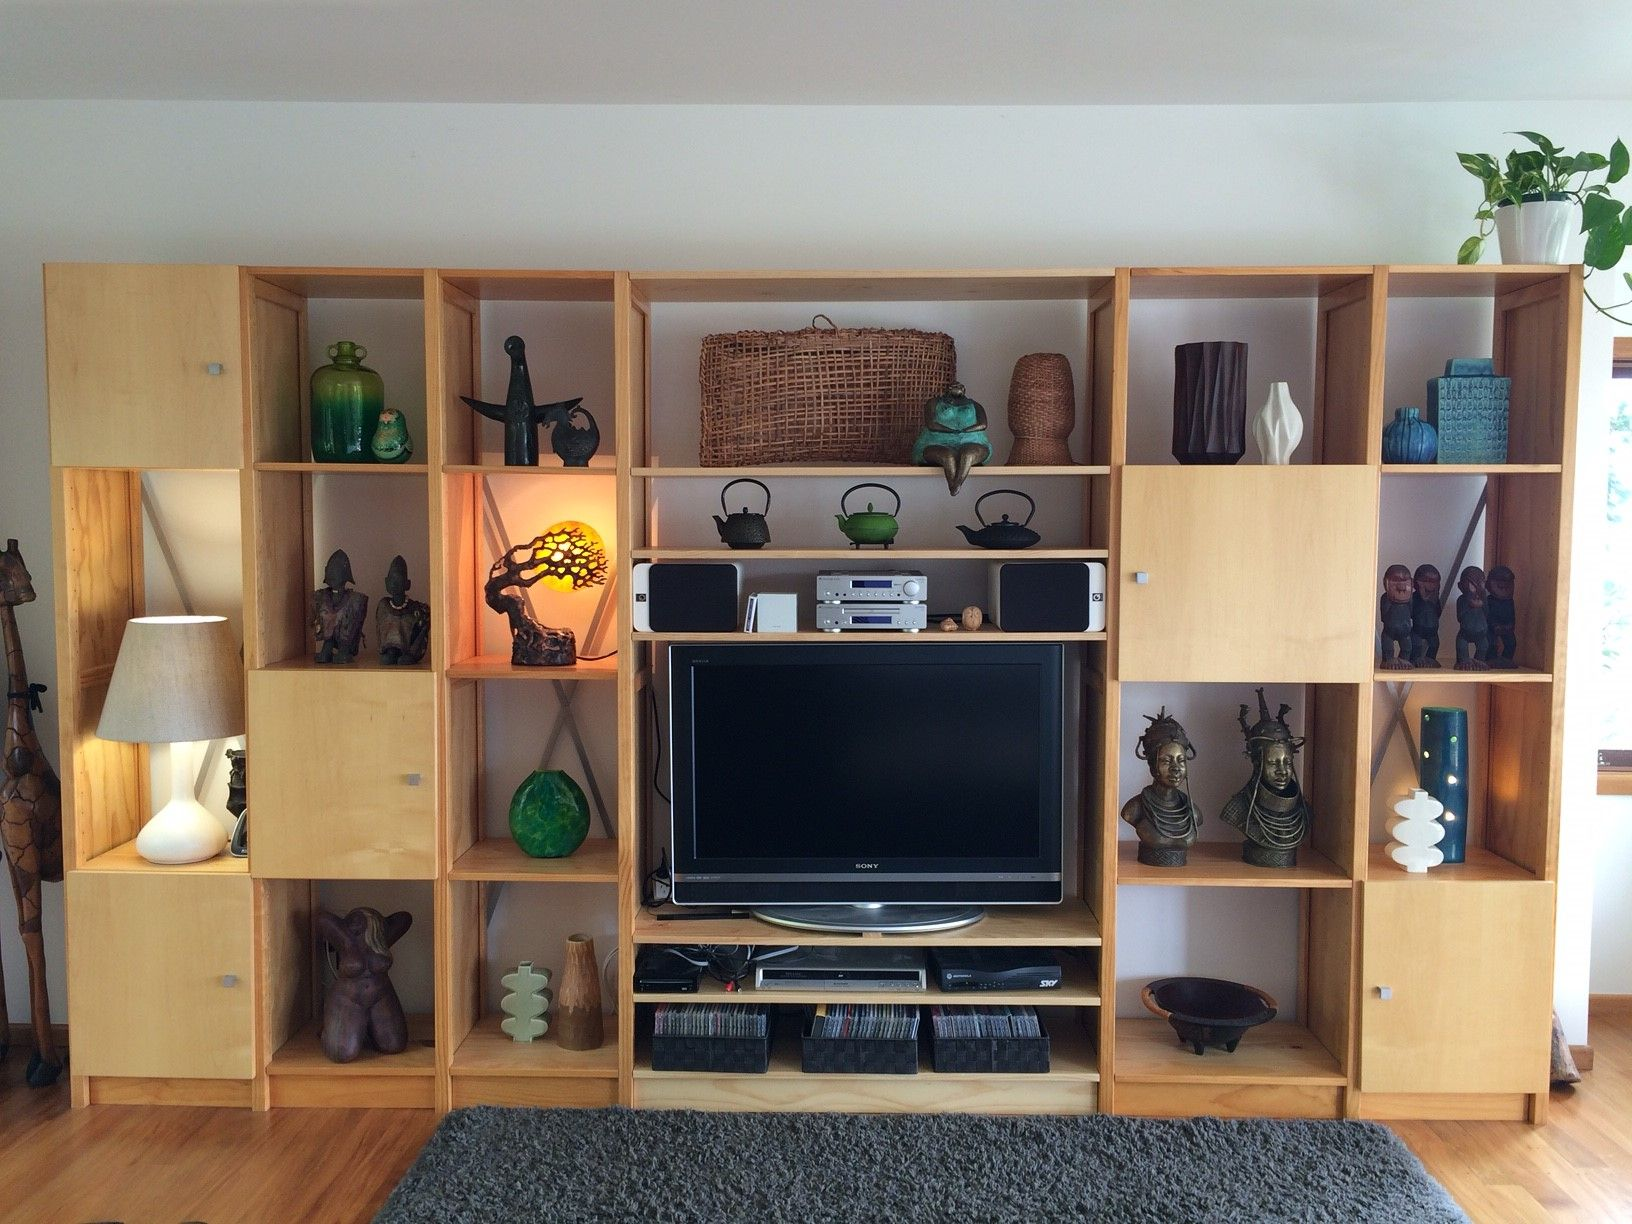 Lundia Tv Kast.Jane S Lounge Unit Reconfigured For A Larger Tv By Lundia